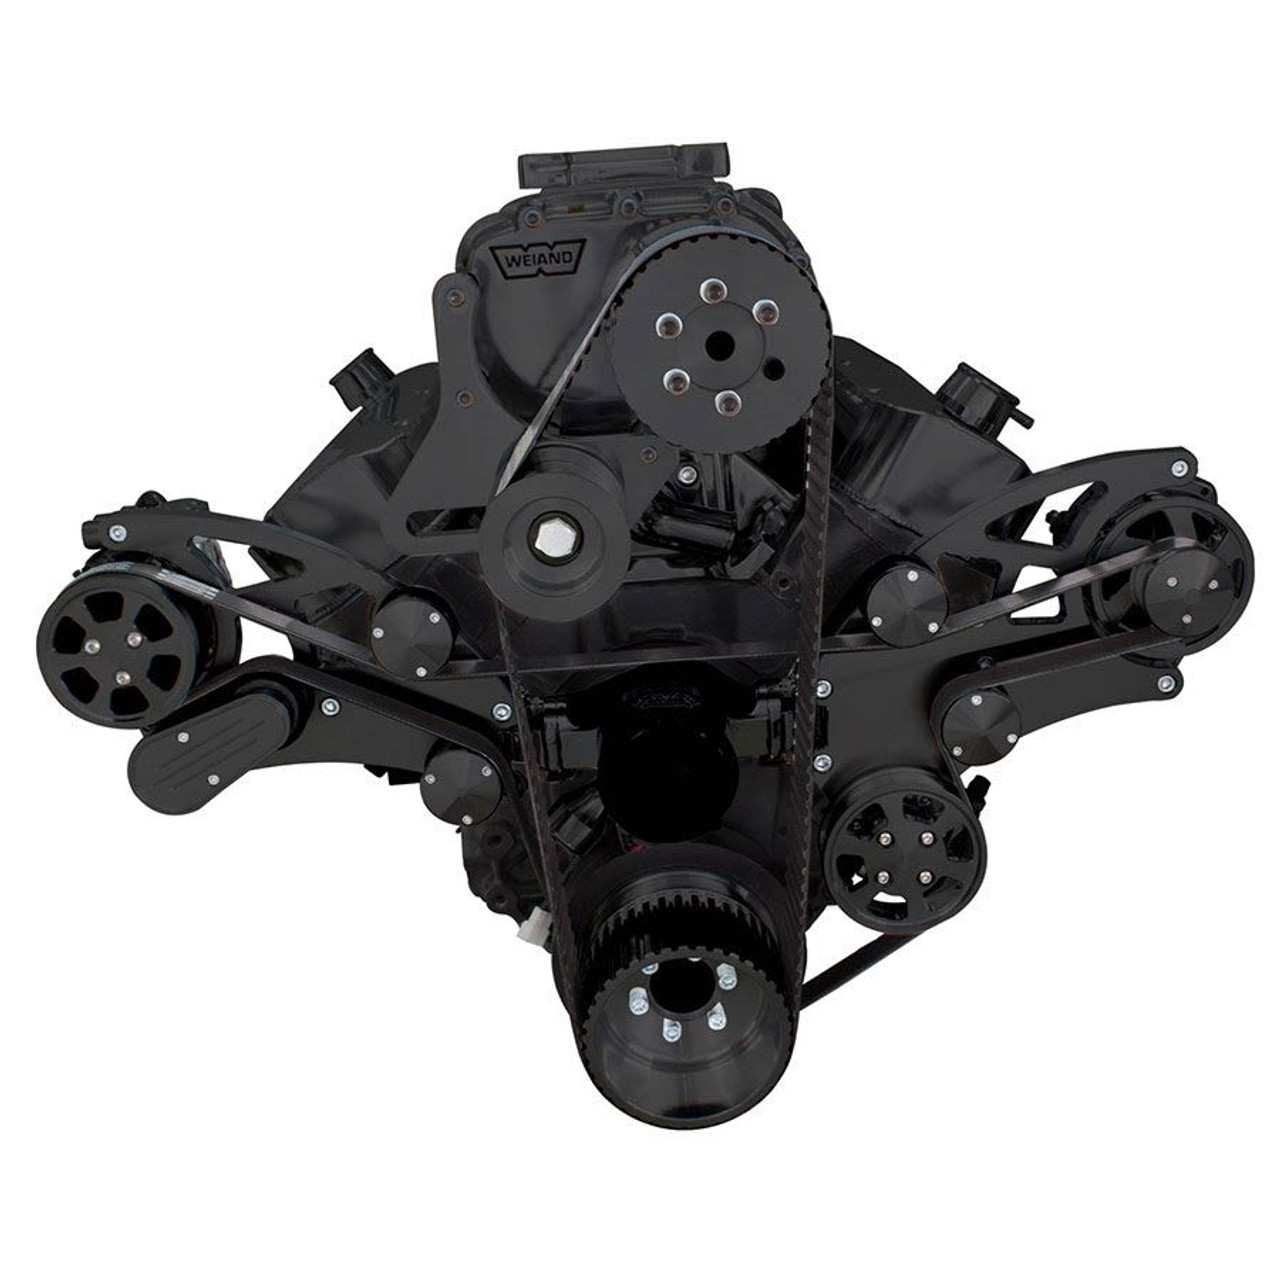 Stealth Black Serpentine System for 396, 427 & 454 Supercharger - Power  Steering & Alternator with Root Style Blower - All Inclusive